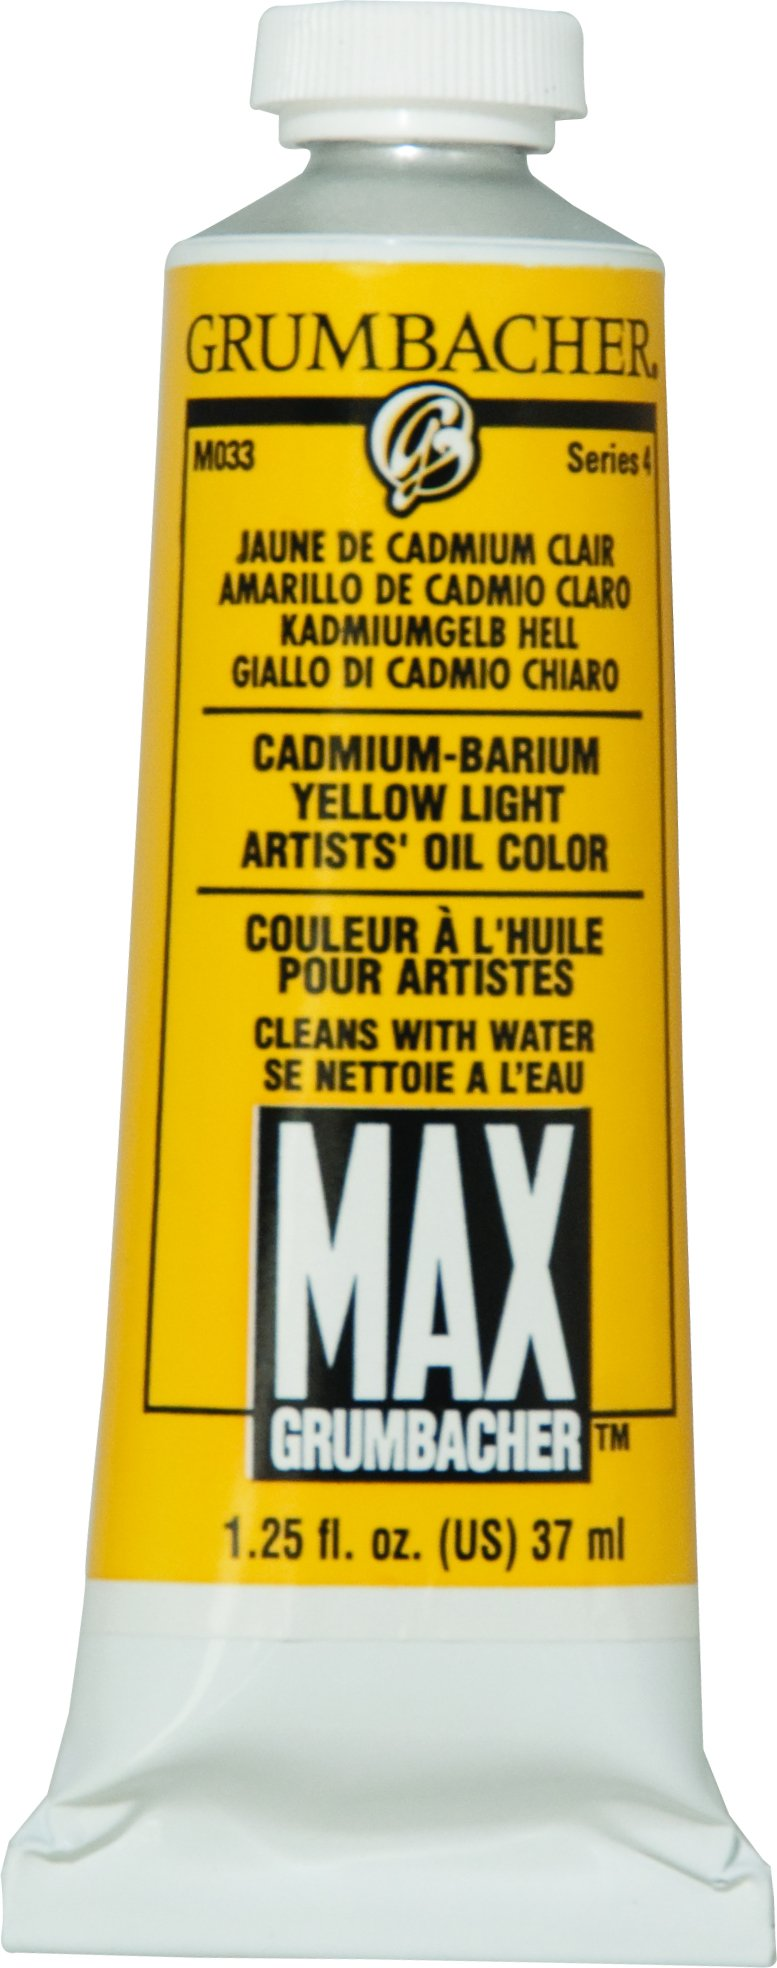 Grumbacher Max Water Miscible Oil Paint, 37ml/1.25 oz, Cadmium-Barium Yellow Light